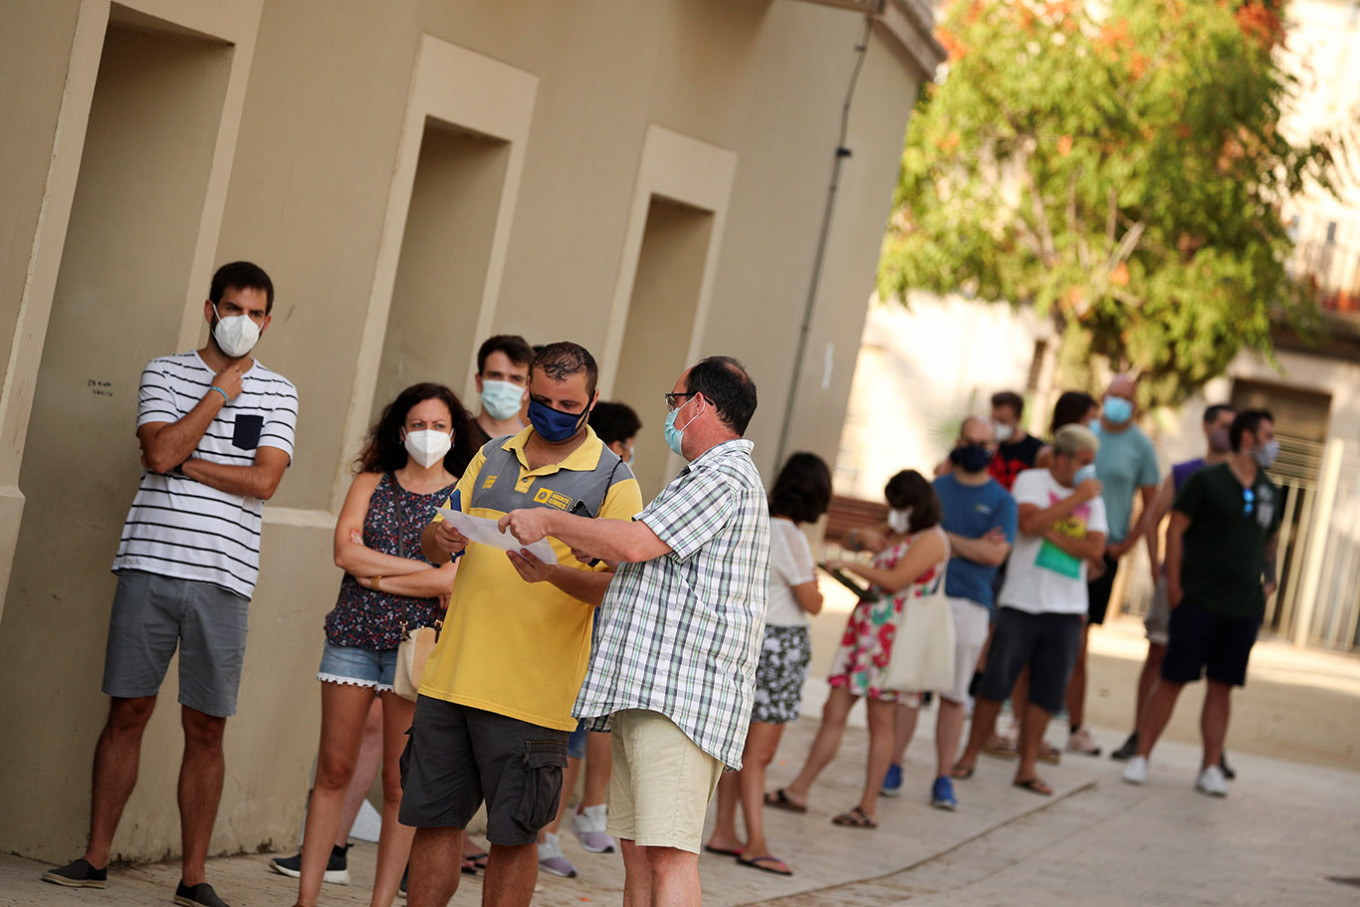 Gripped by virus resurgence, Spain reports 3,594 new cases